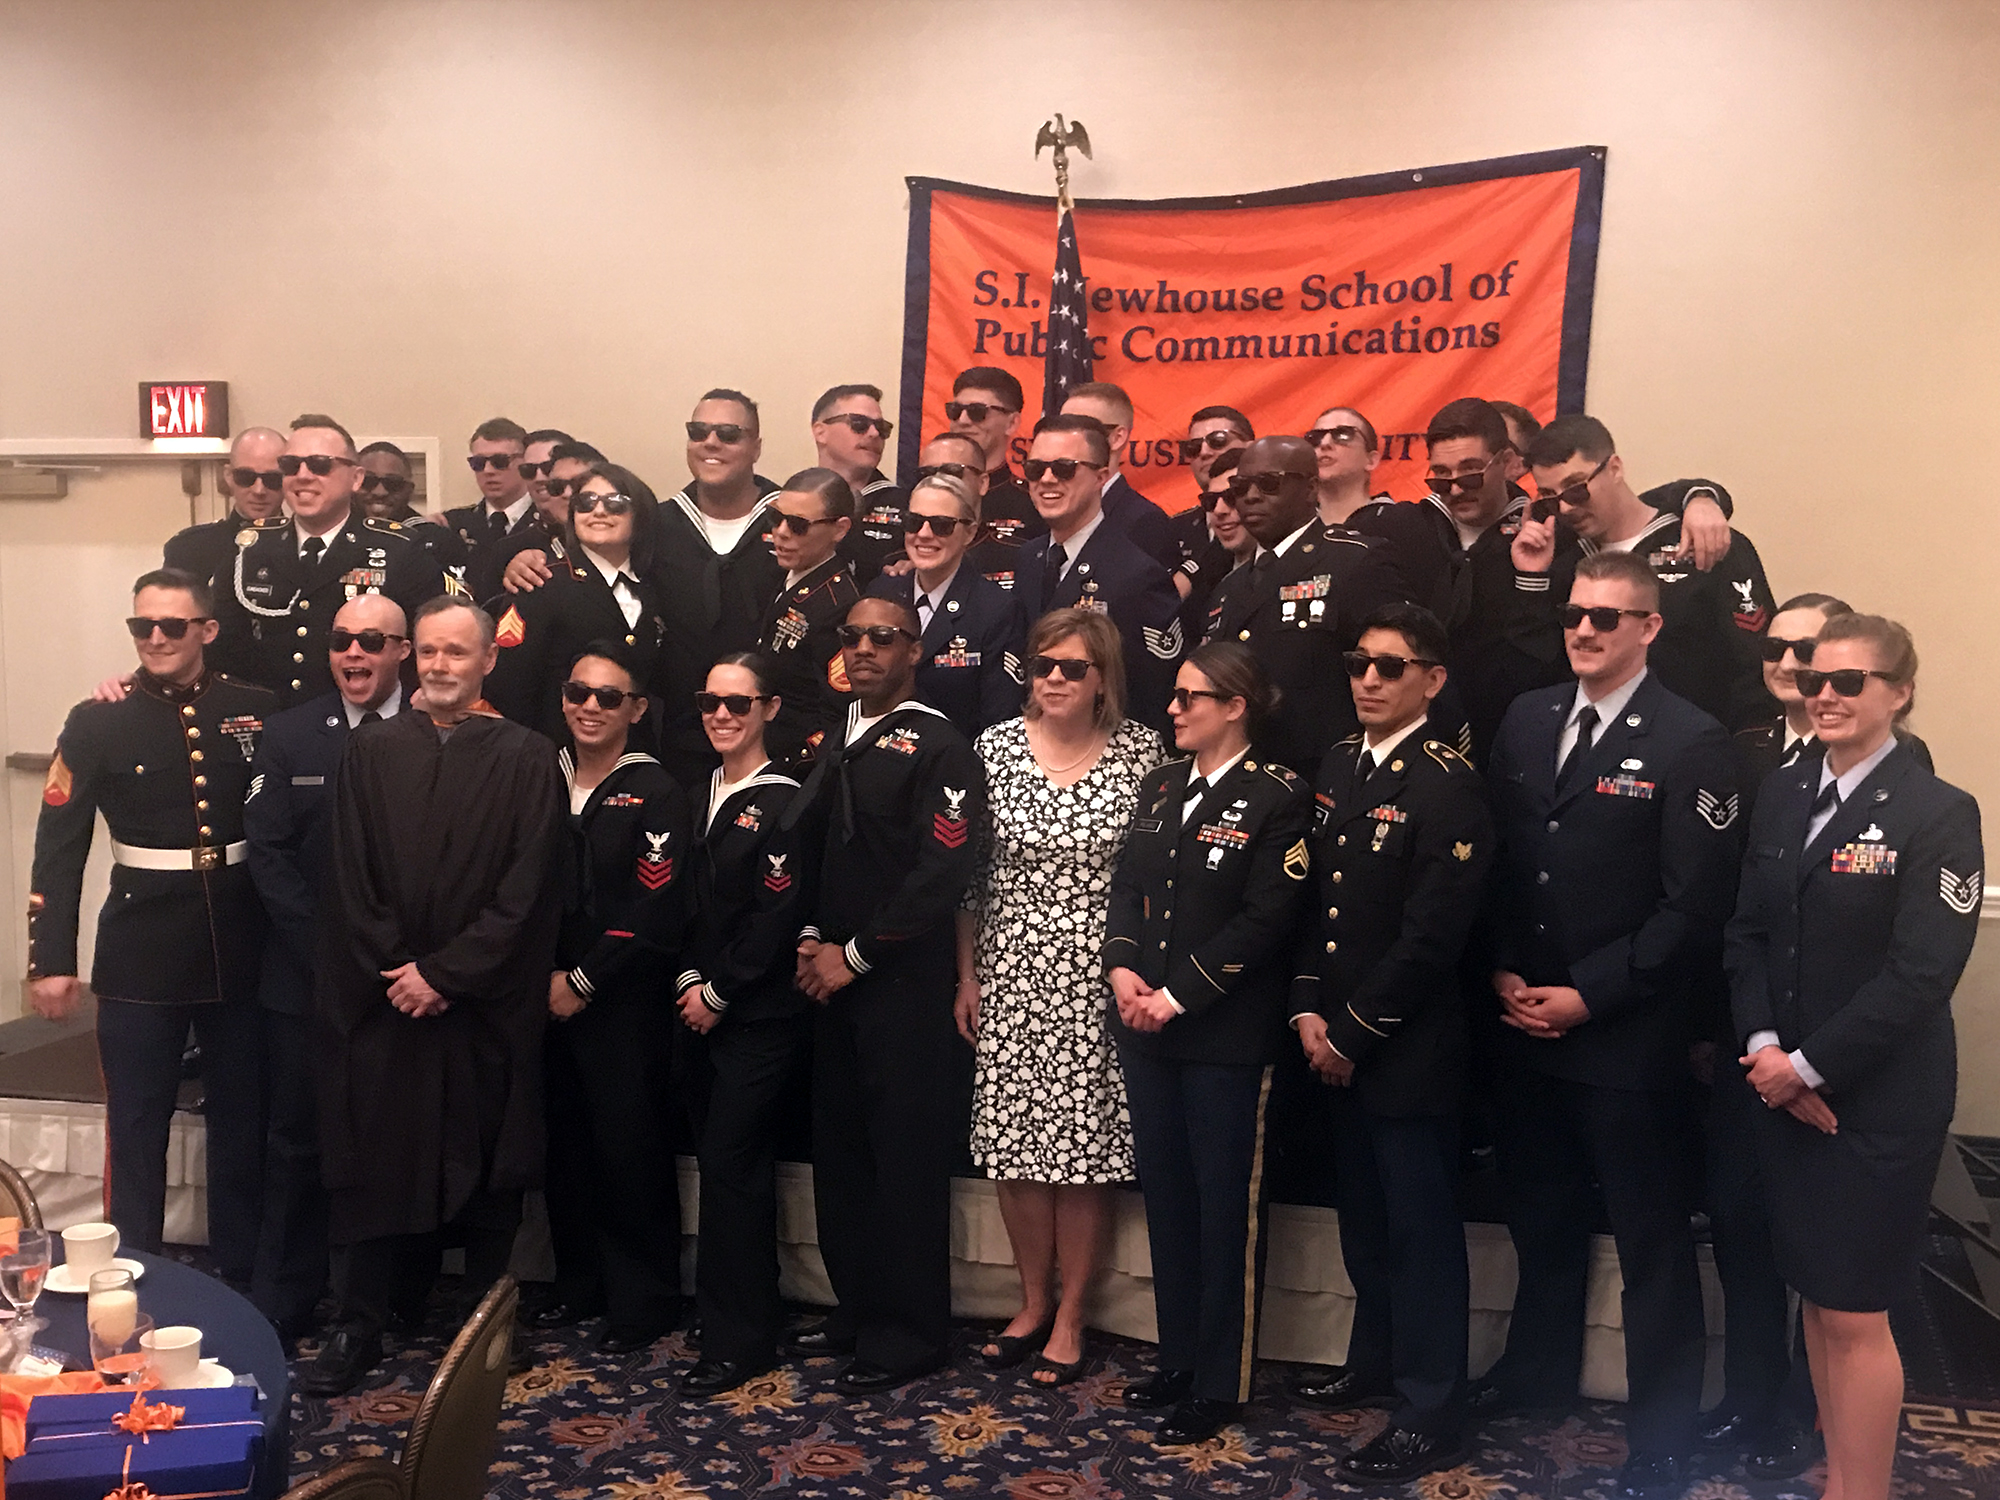 Military Visual Journalism program students at their Syracuse University S.I. Newhouse School of Public Communications ceremony, May 2019.